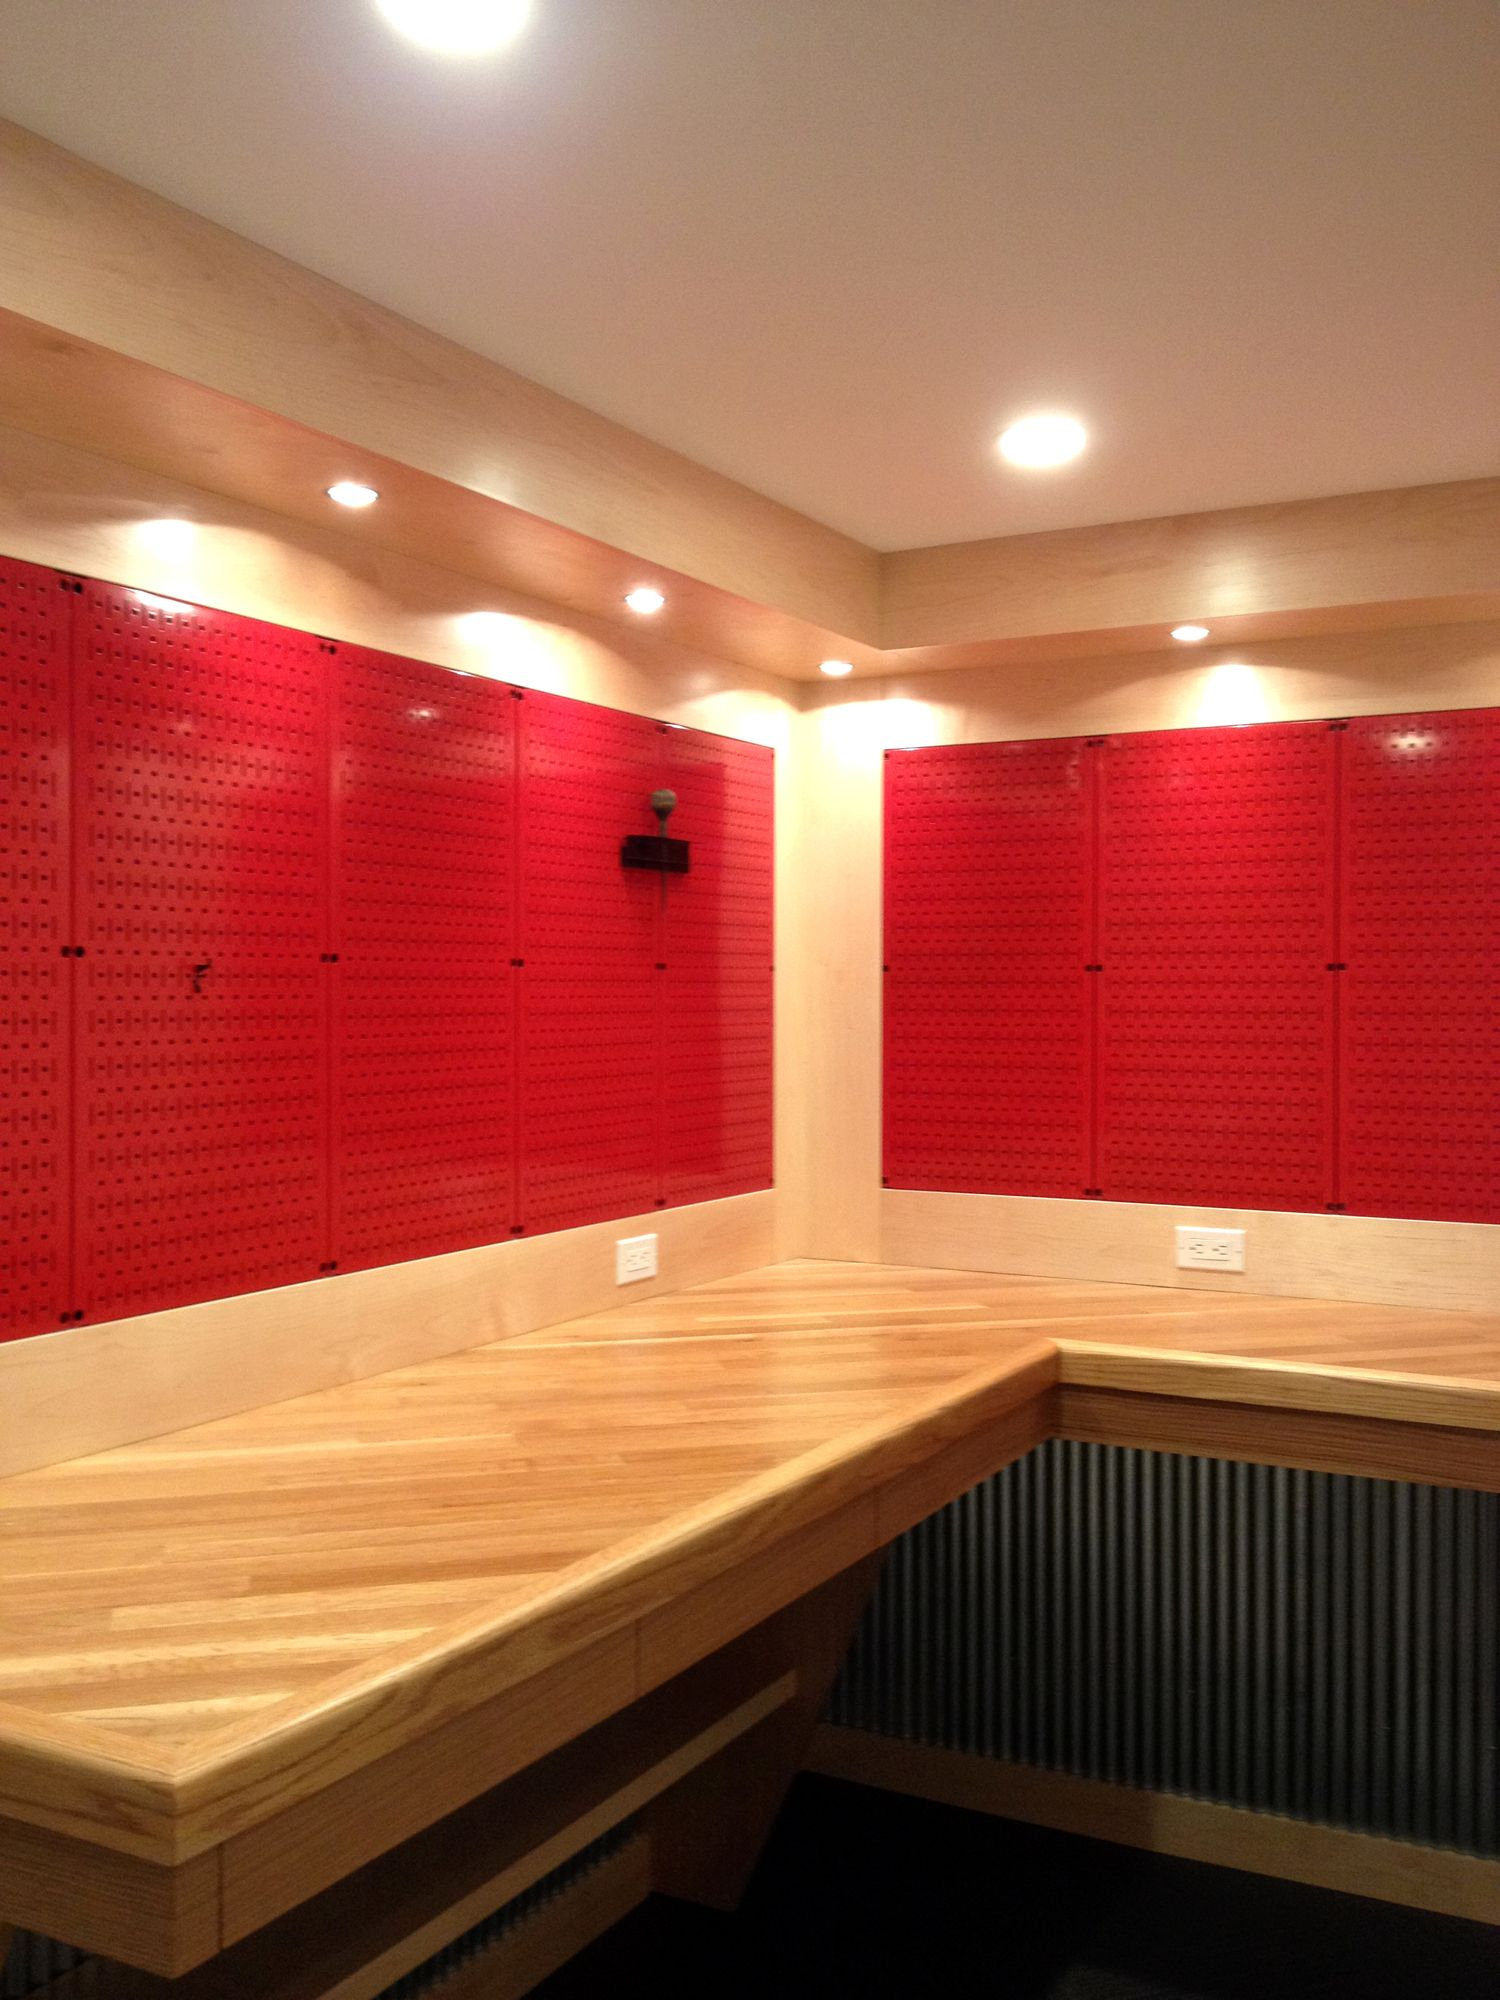 a really nice workbench with red metal pegboard panels from wall garage ideas a really nice workbench with red metal pegboard panels from wall control